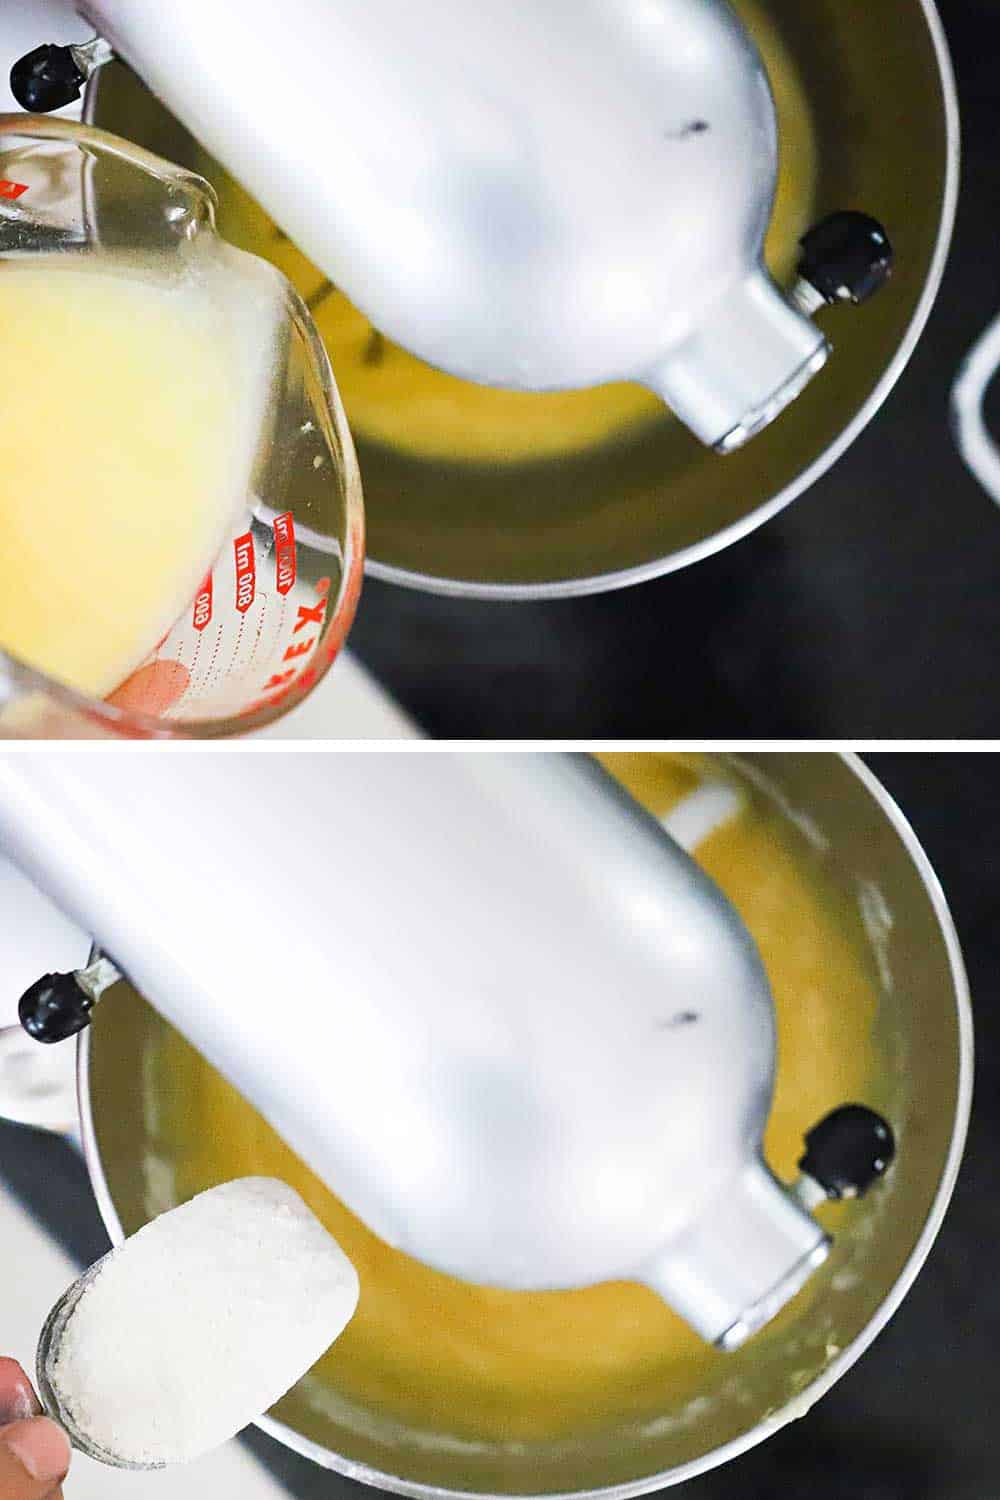 Melted butter being poured from a measuring cup into a stand mixer bowl and then flour being added into the bowl.